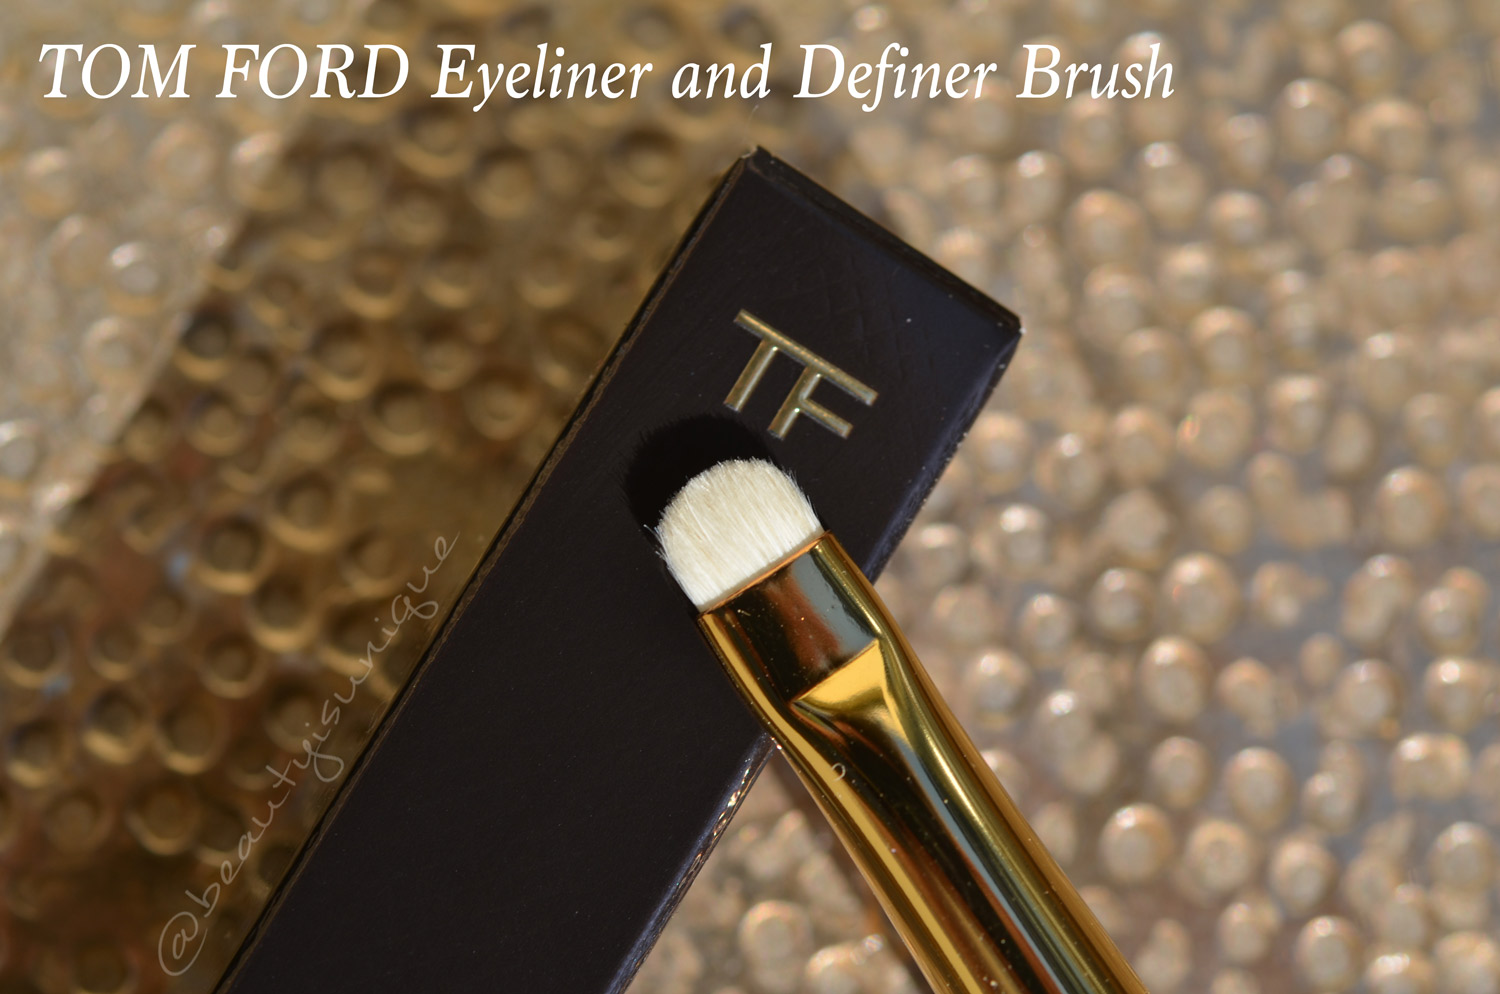 Tom Ford Eyeliner and Definer Brush